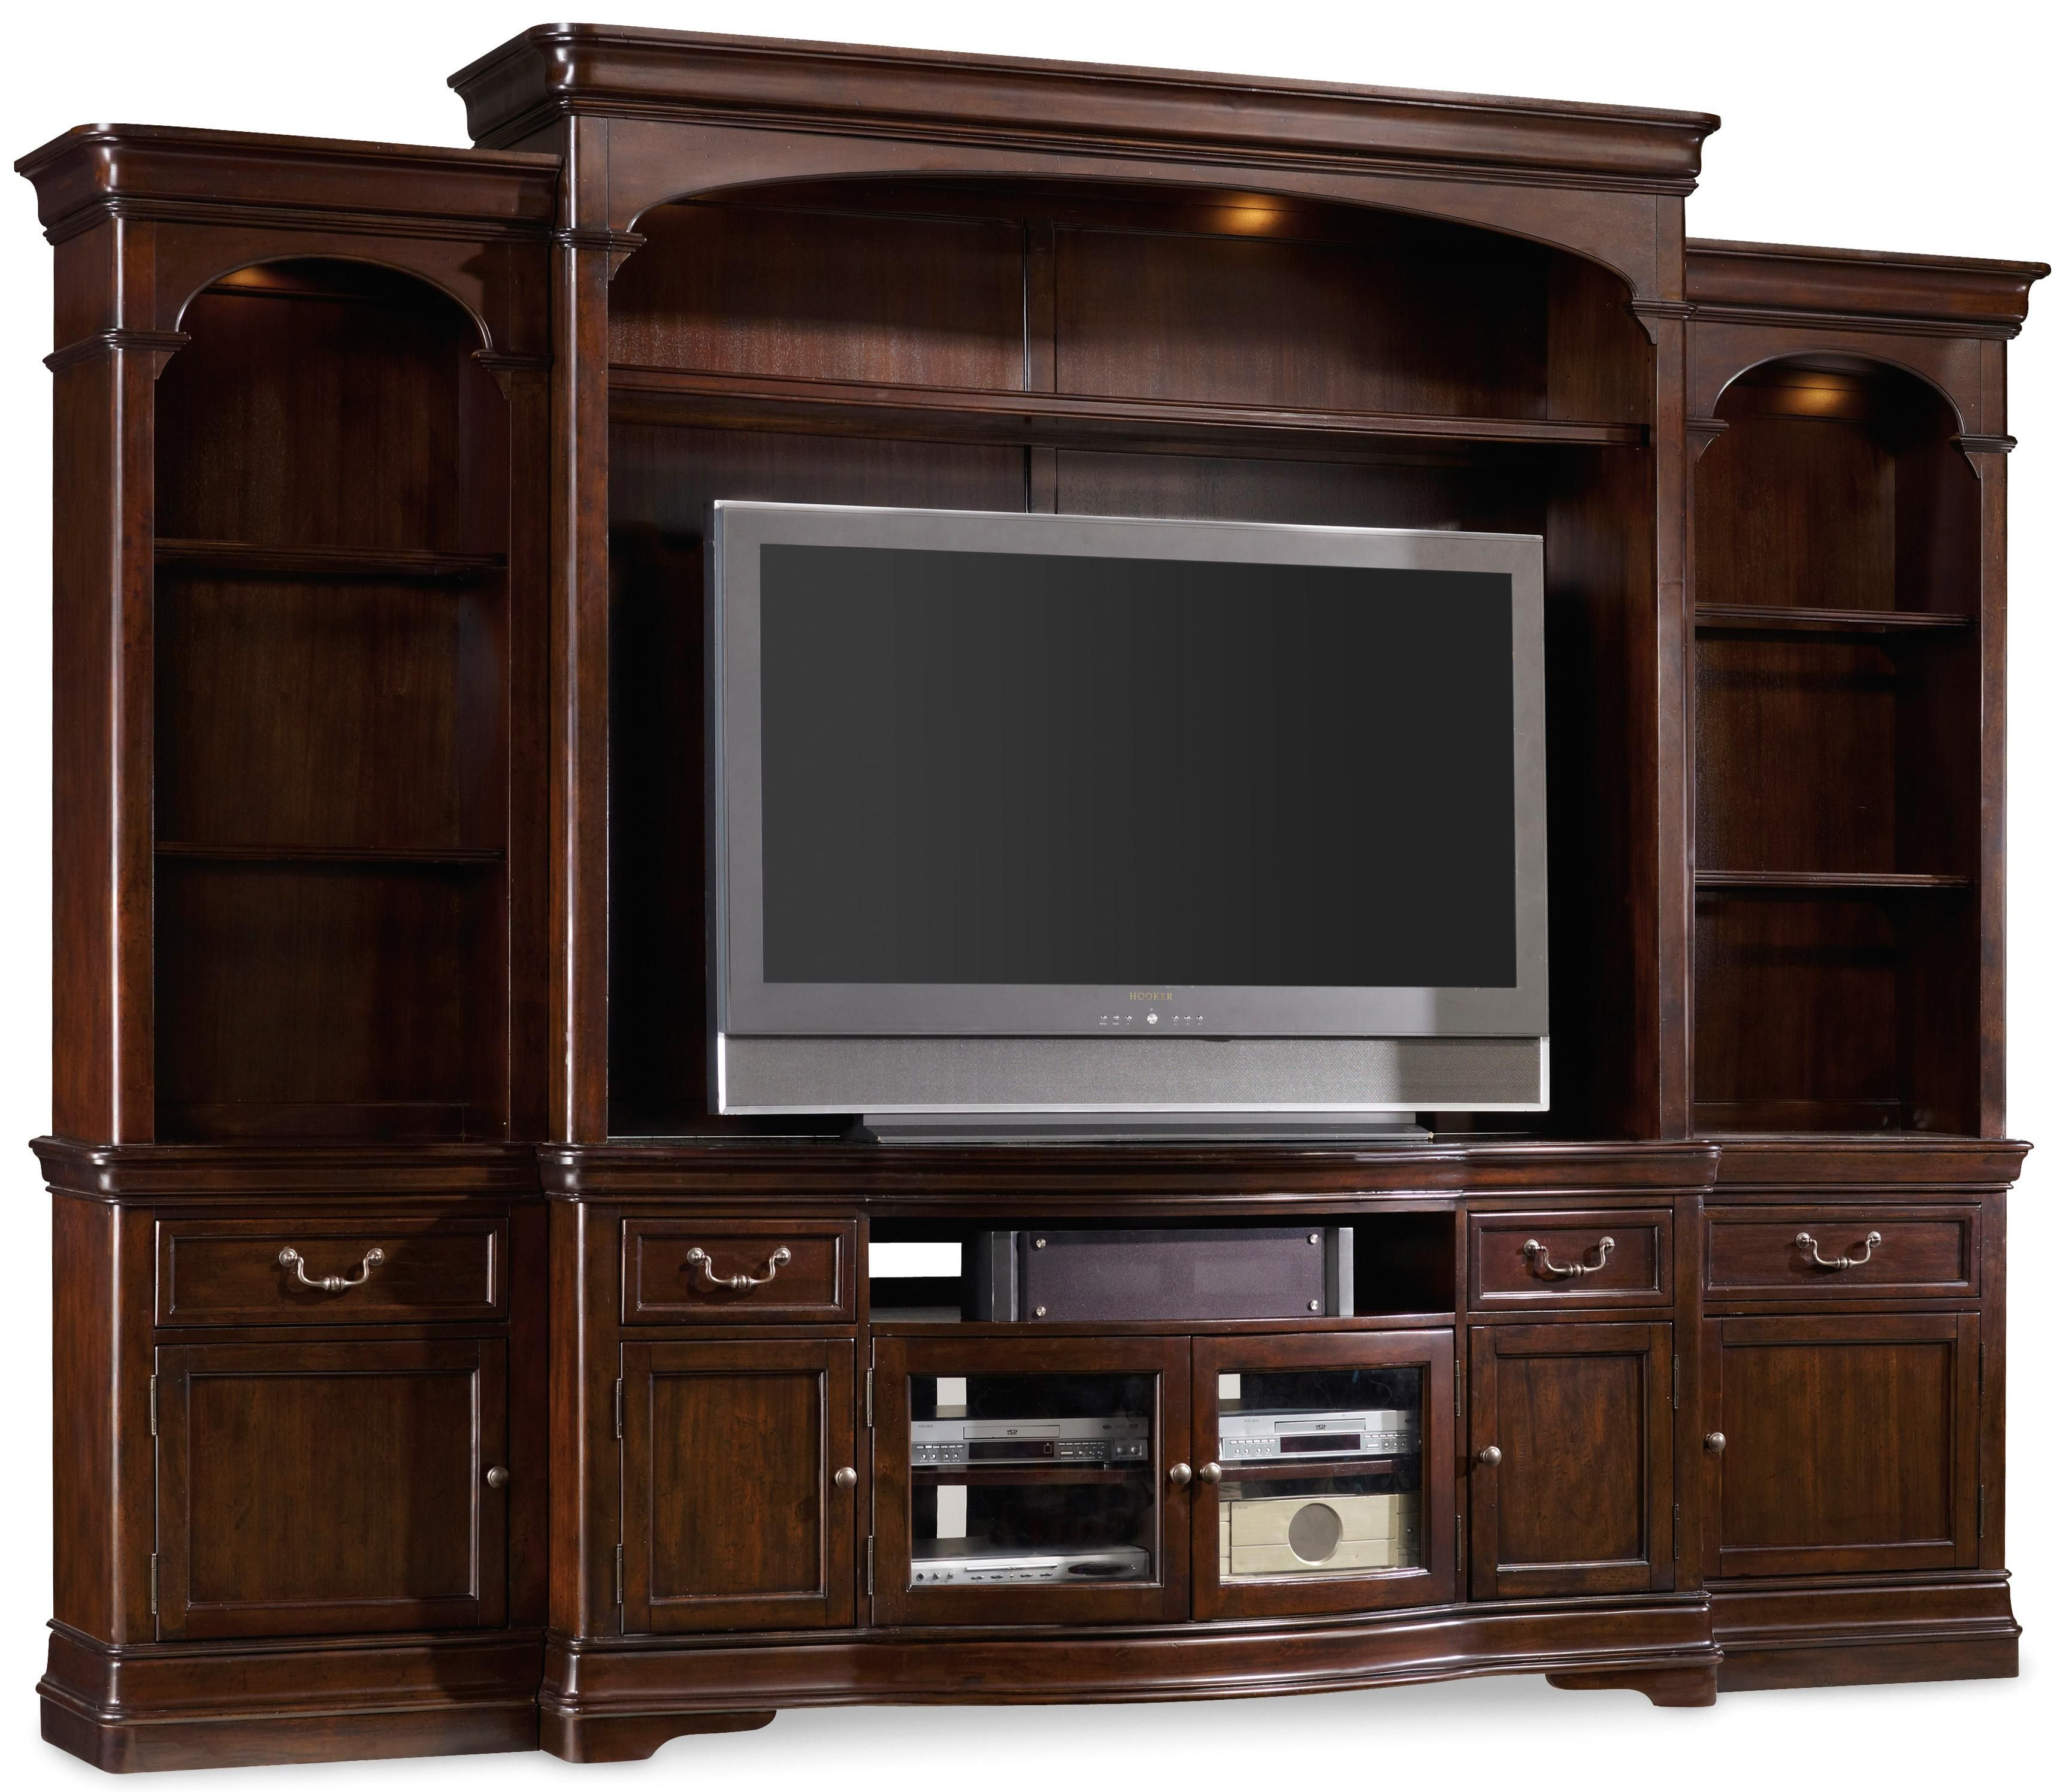 hooker furniture entertainment center. Hooker Furniture Sheridan Traditional Four-Piece Breakfront Entertainment Unit With Touch Lighting And Adjustable Shelves - Belfort Wall Center M